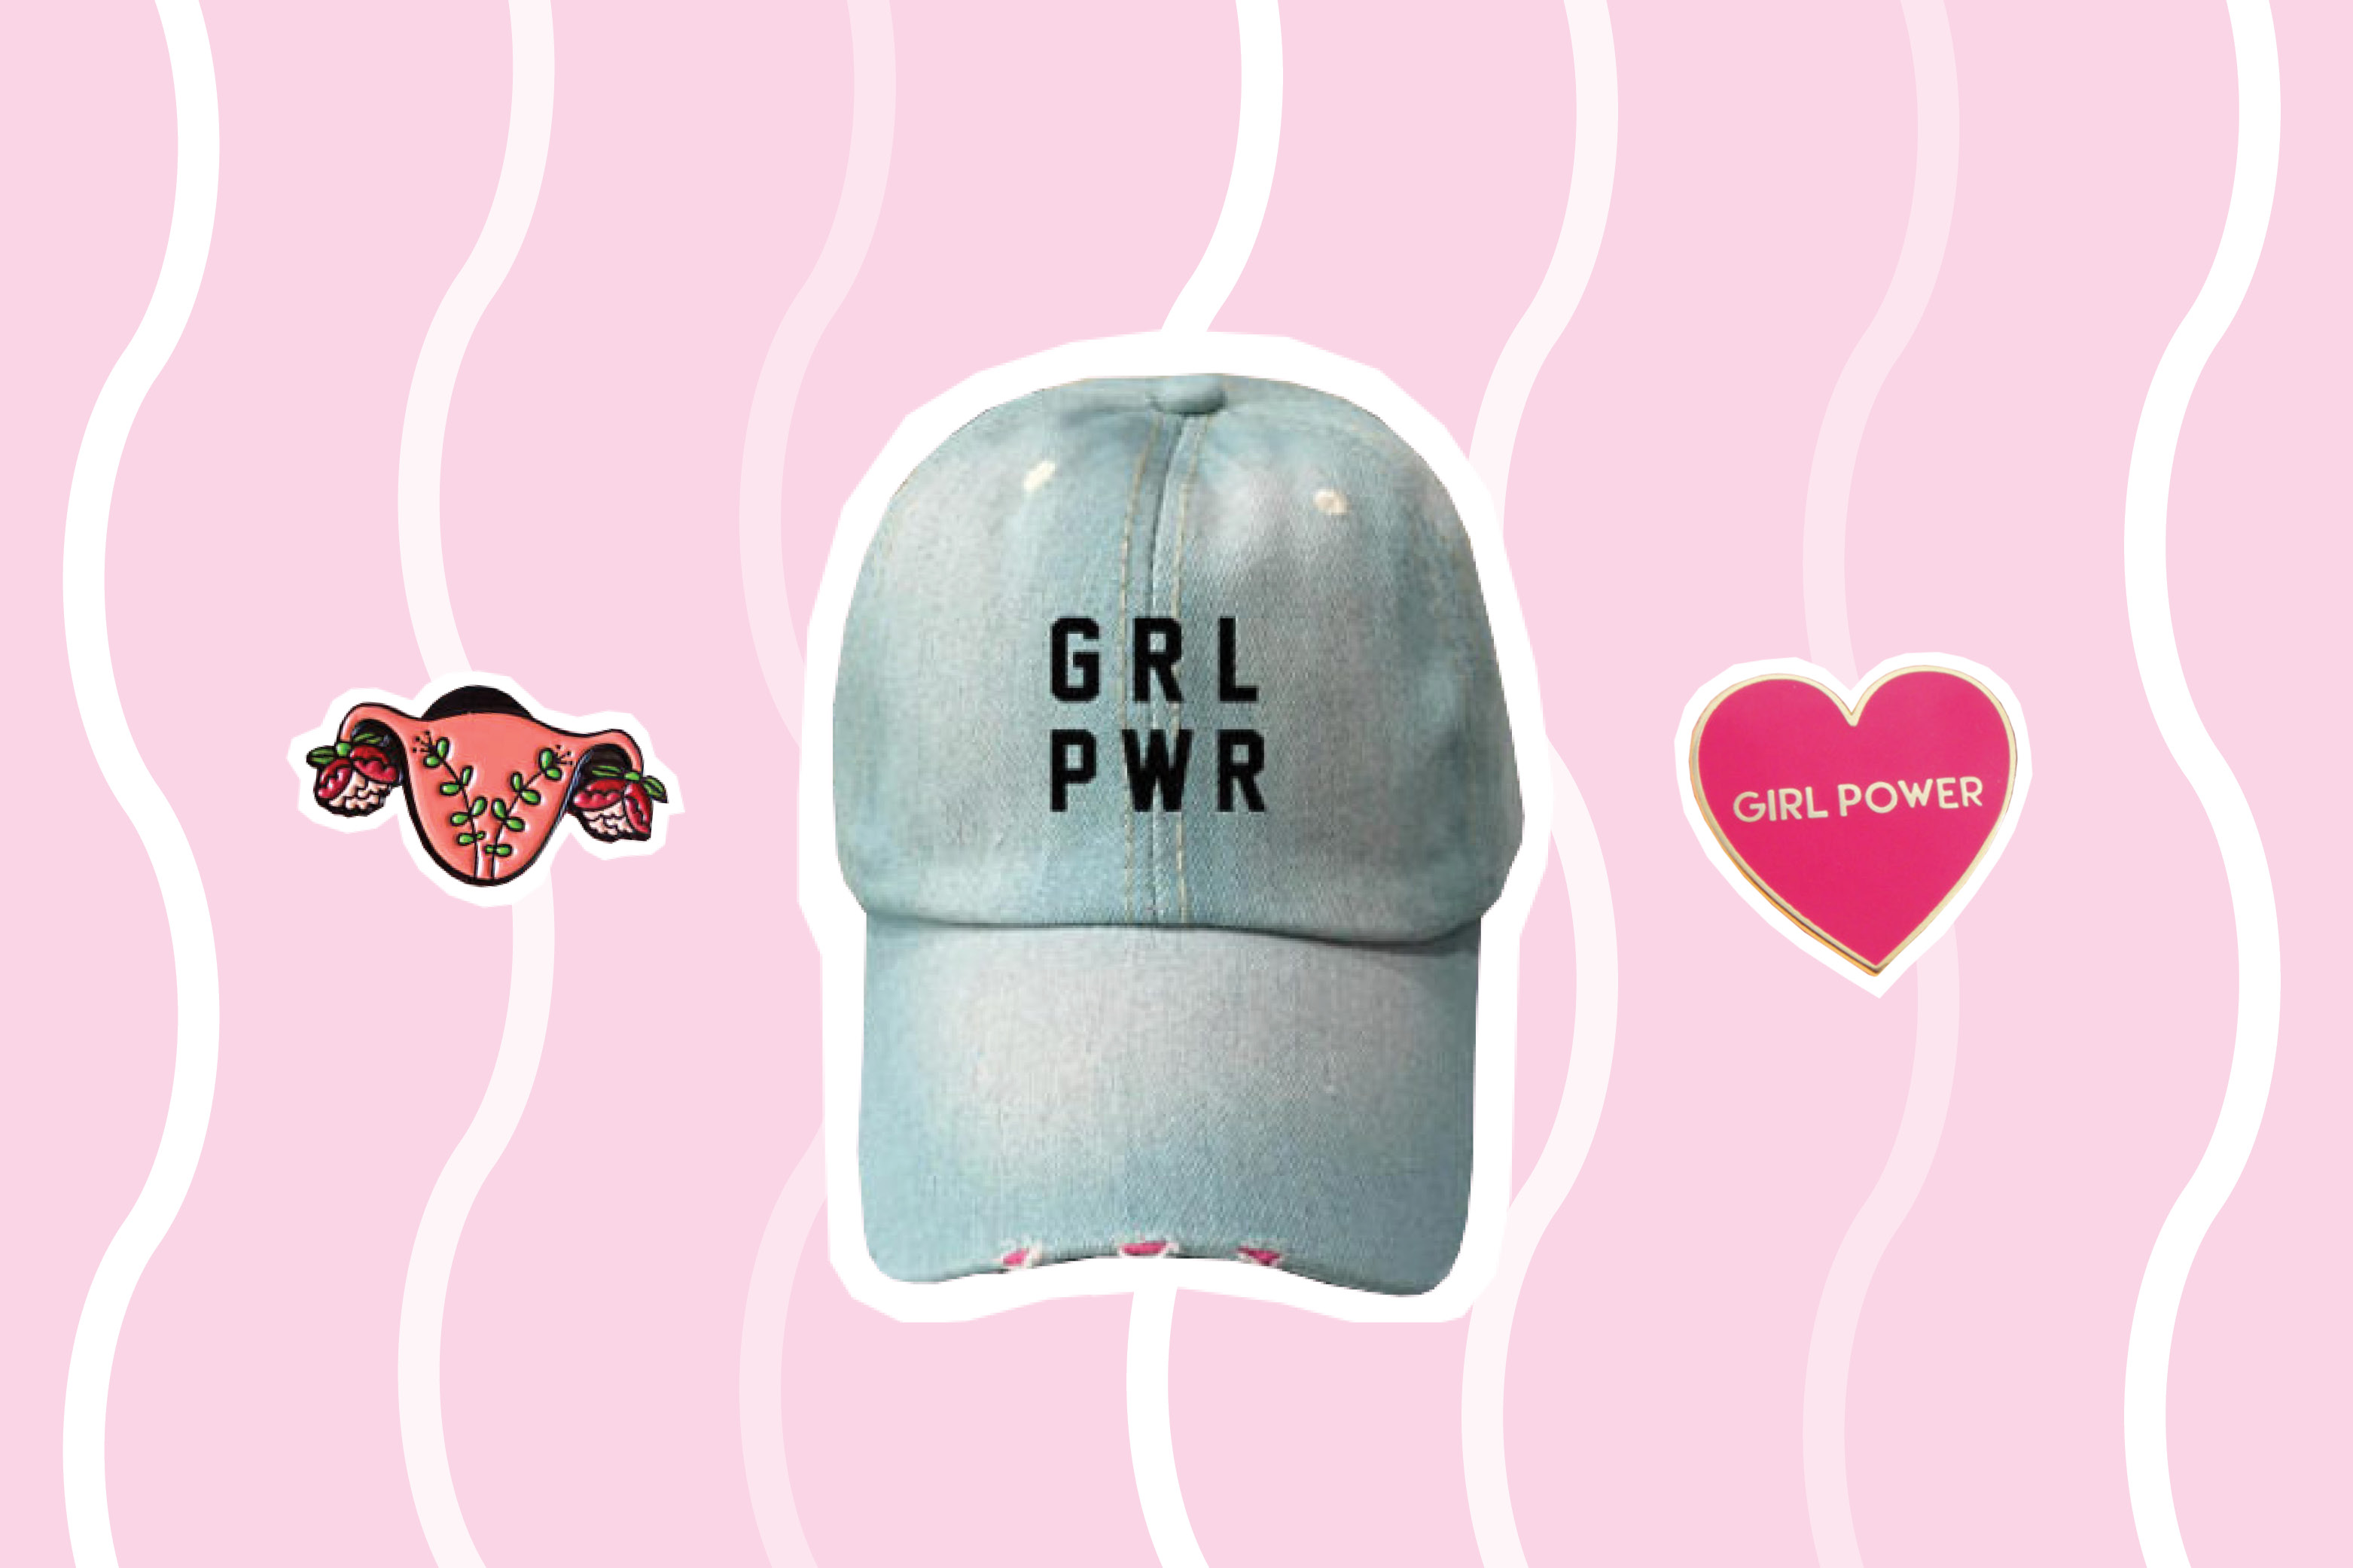 11 ~grrrl power~ products to surprise your BFF with on Best Friends Day